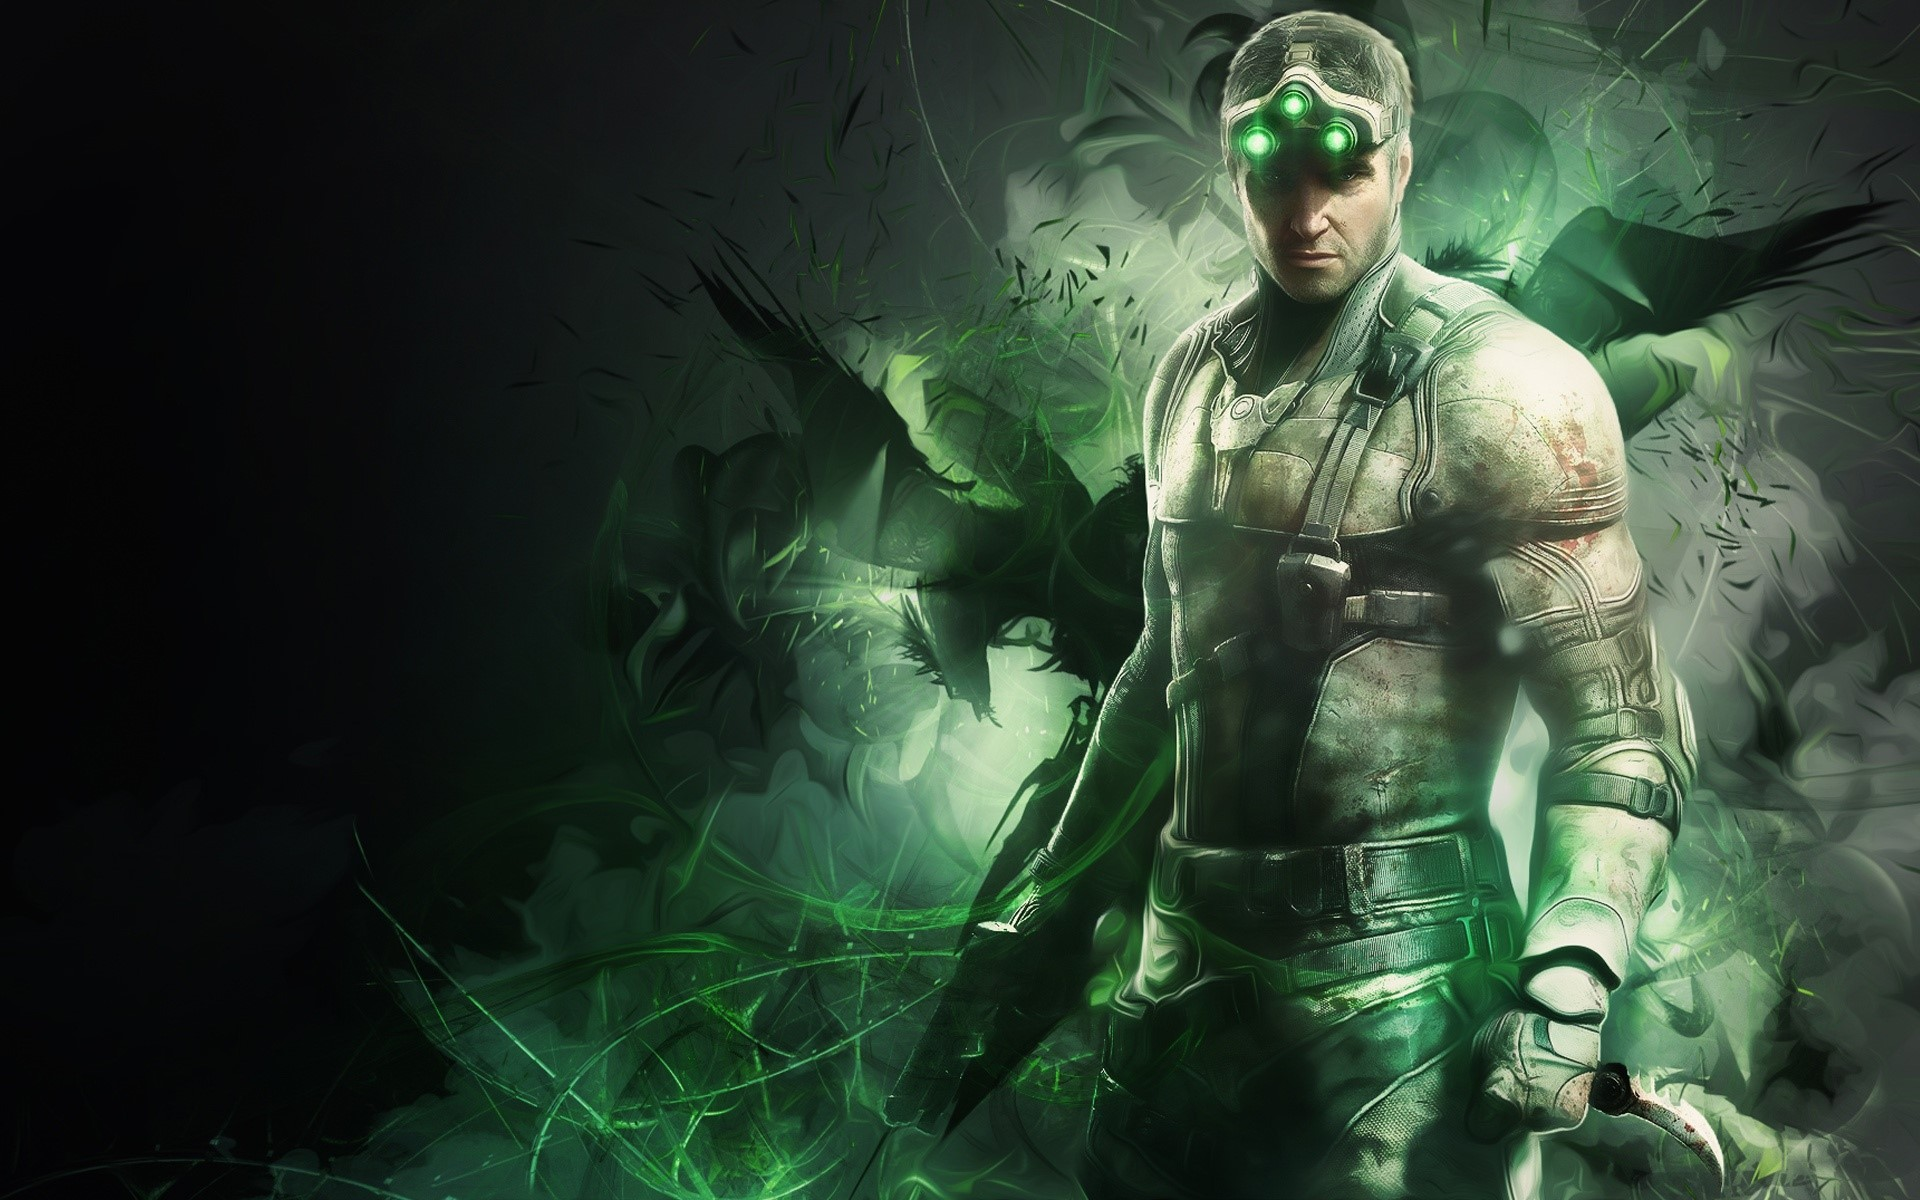 Fondos de pantalla Tom Clancy's Splinter Cell